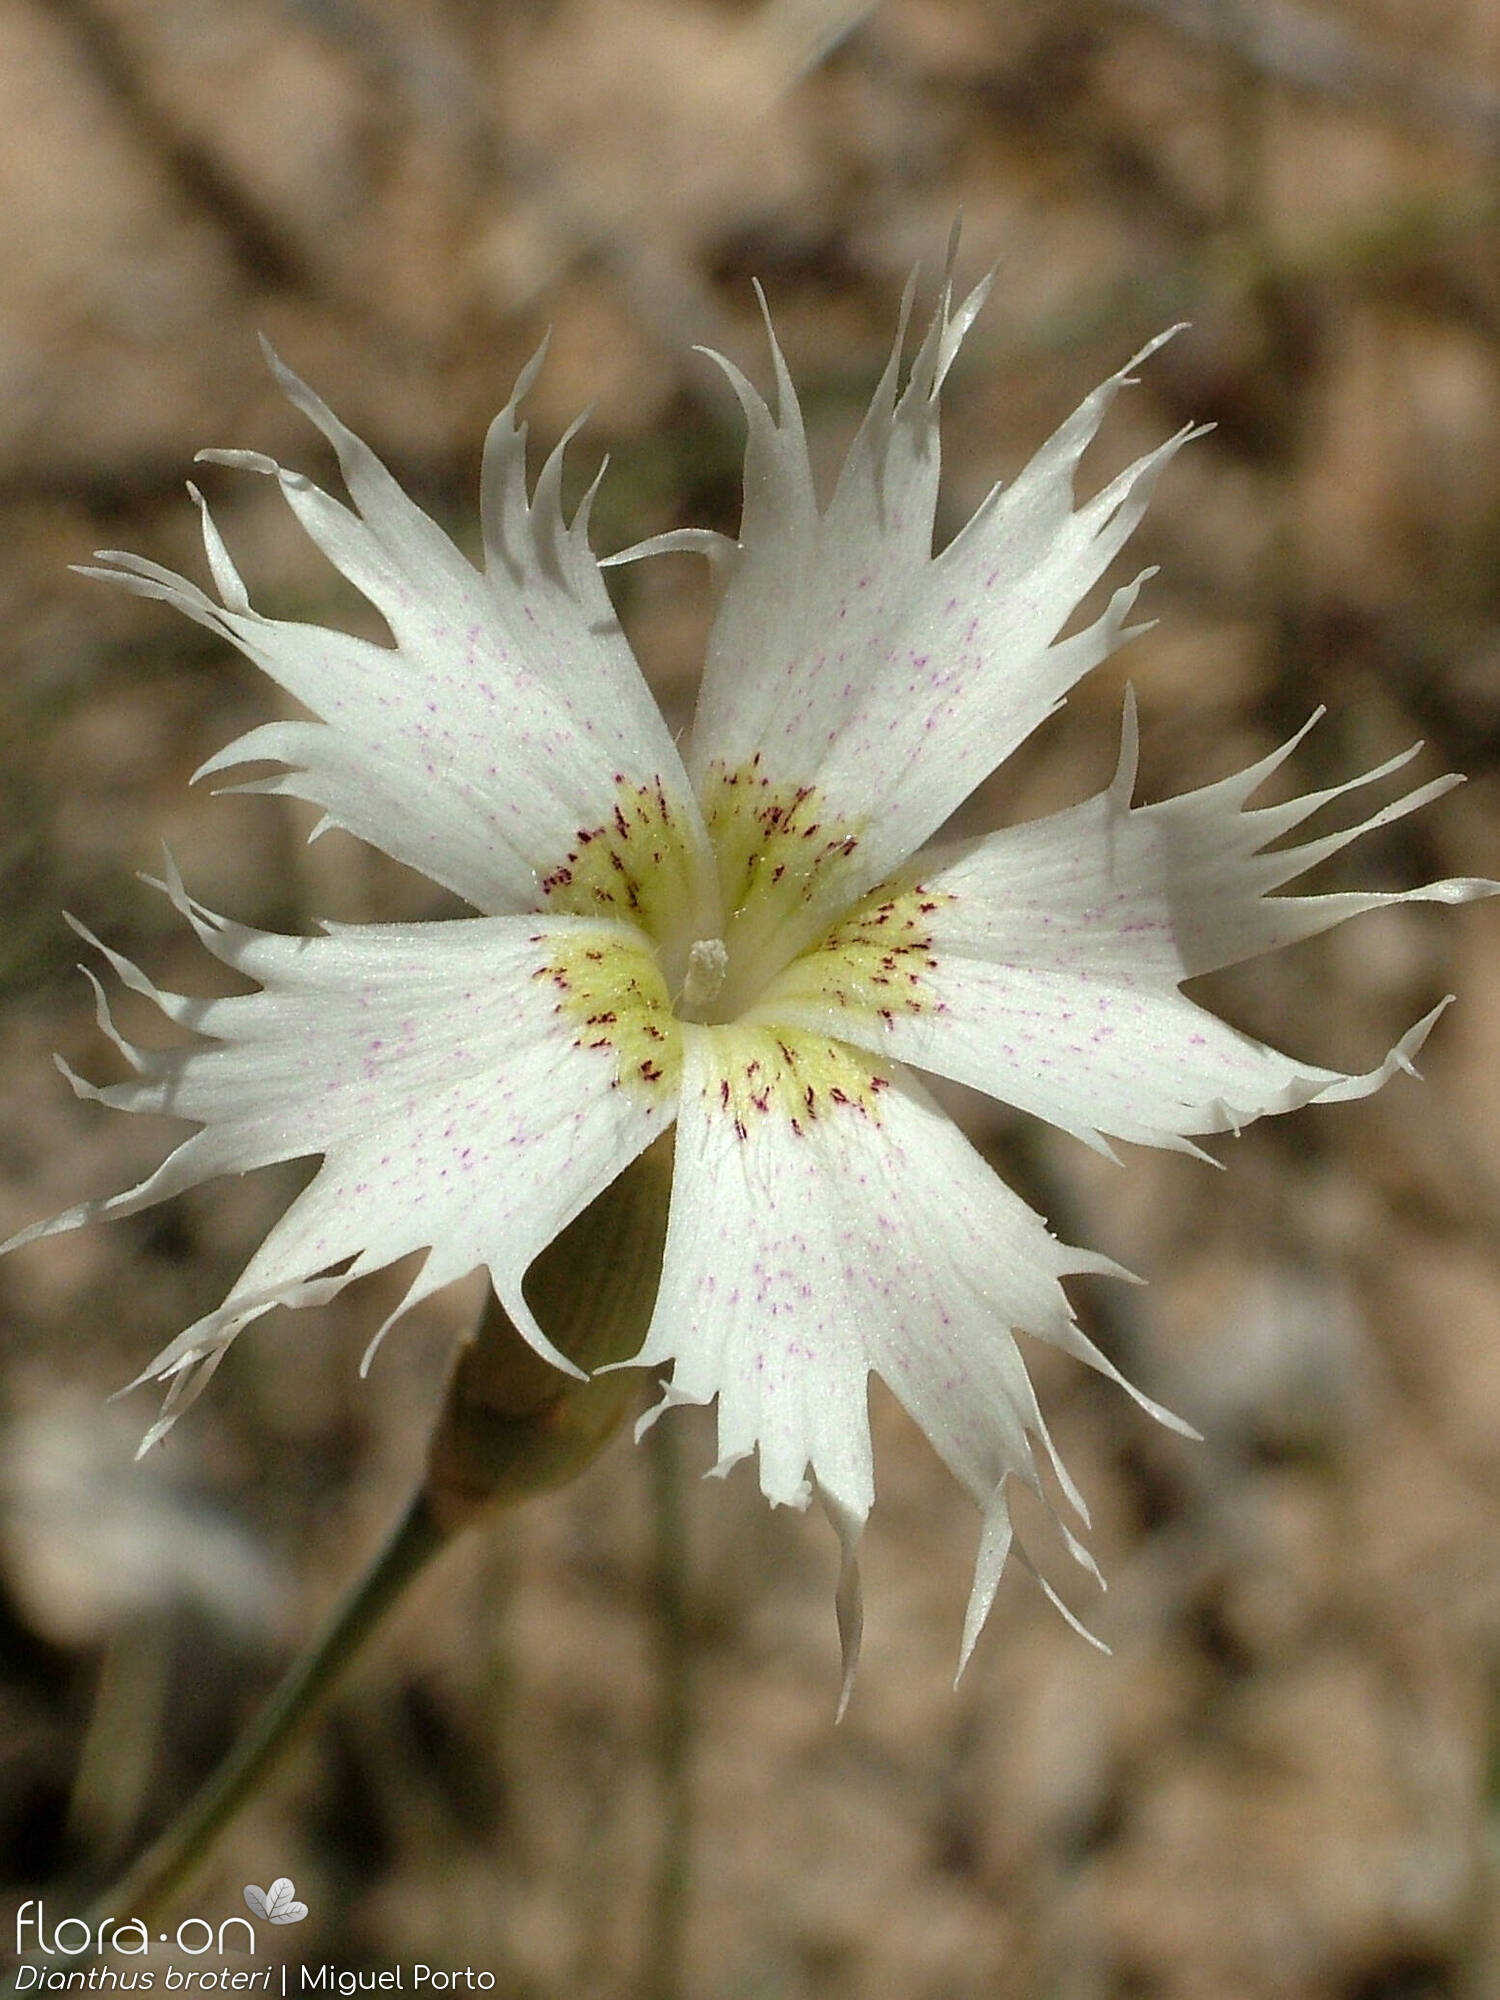 Dianthus broteri - Flor (close-up) | Miguel Porto; CC BY-NC 4.0